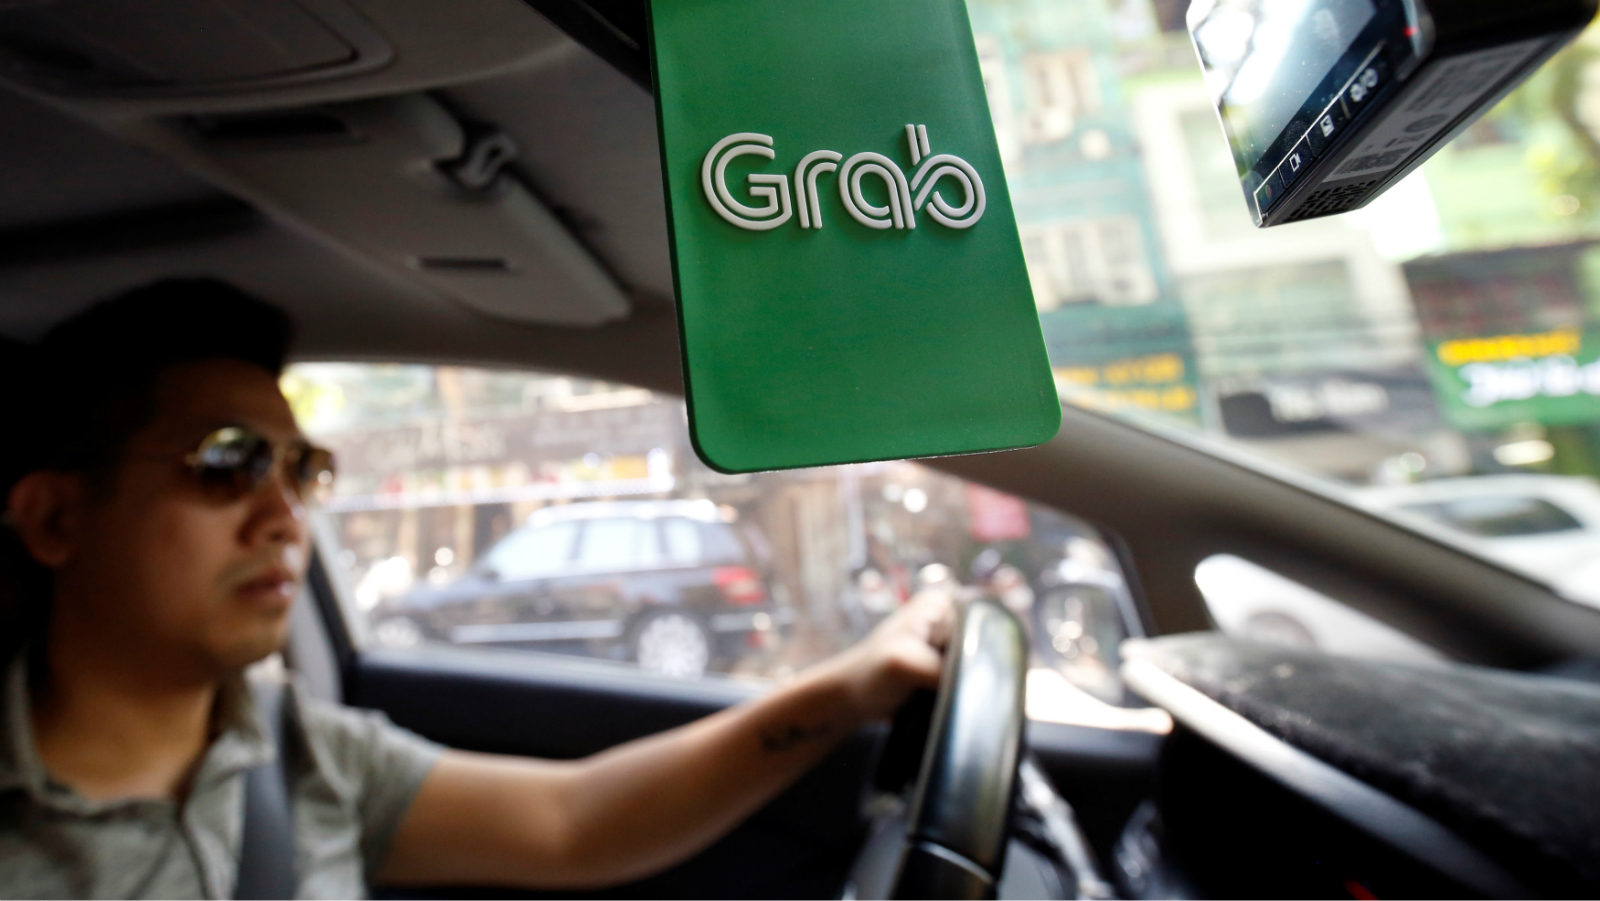 Grab-Indonesia-Maps-Uber-Singapore